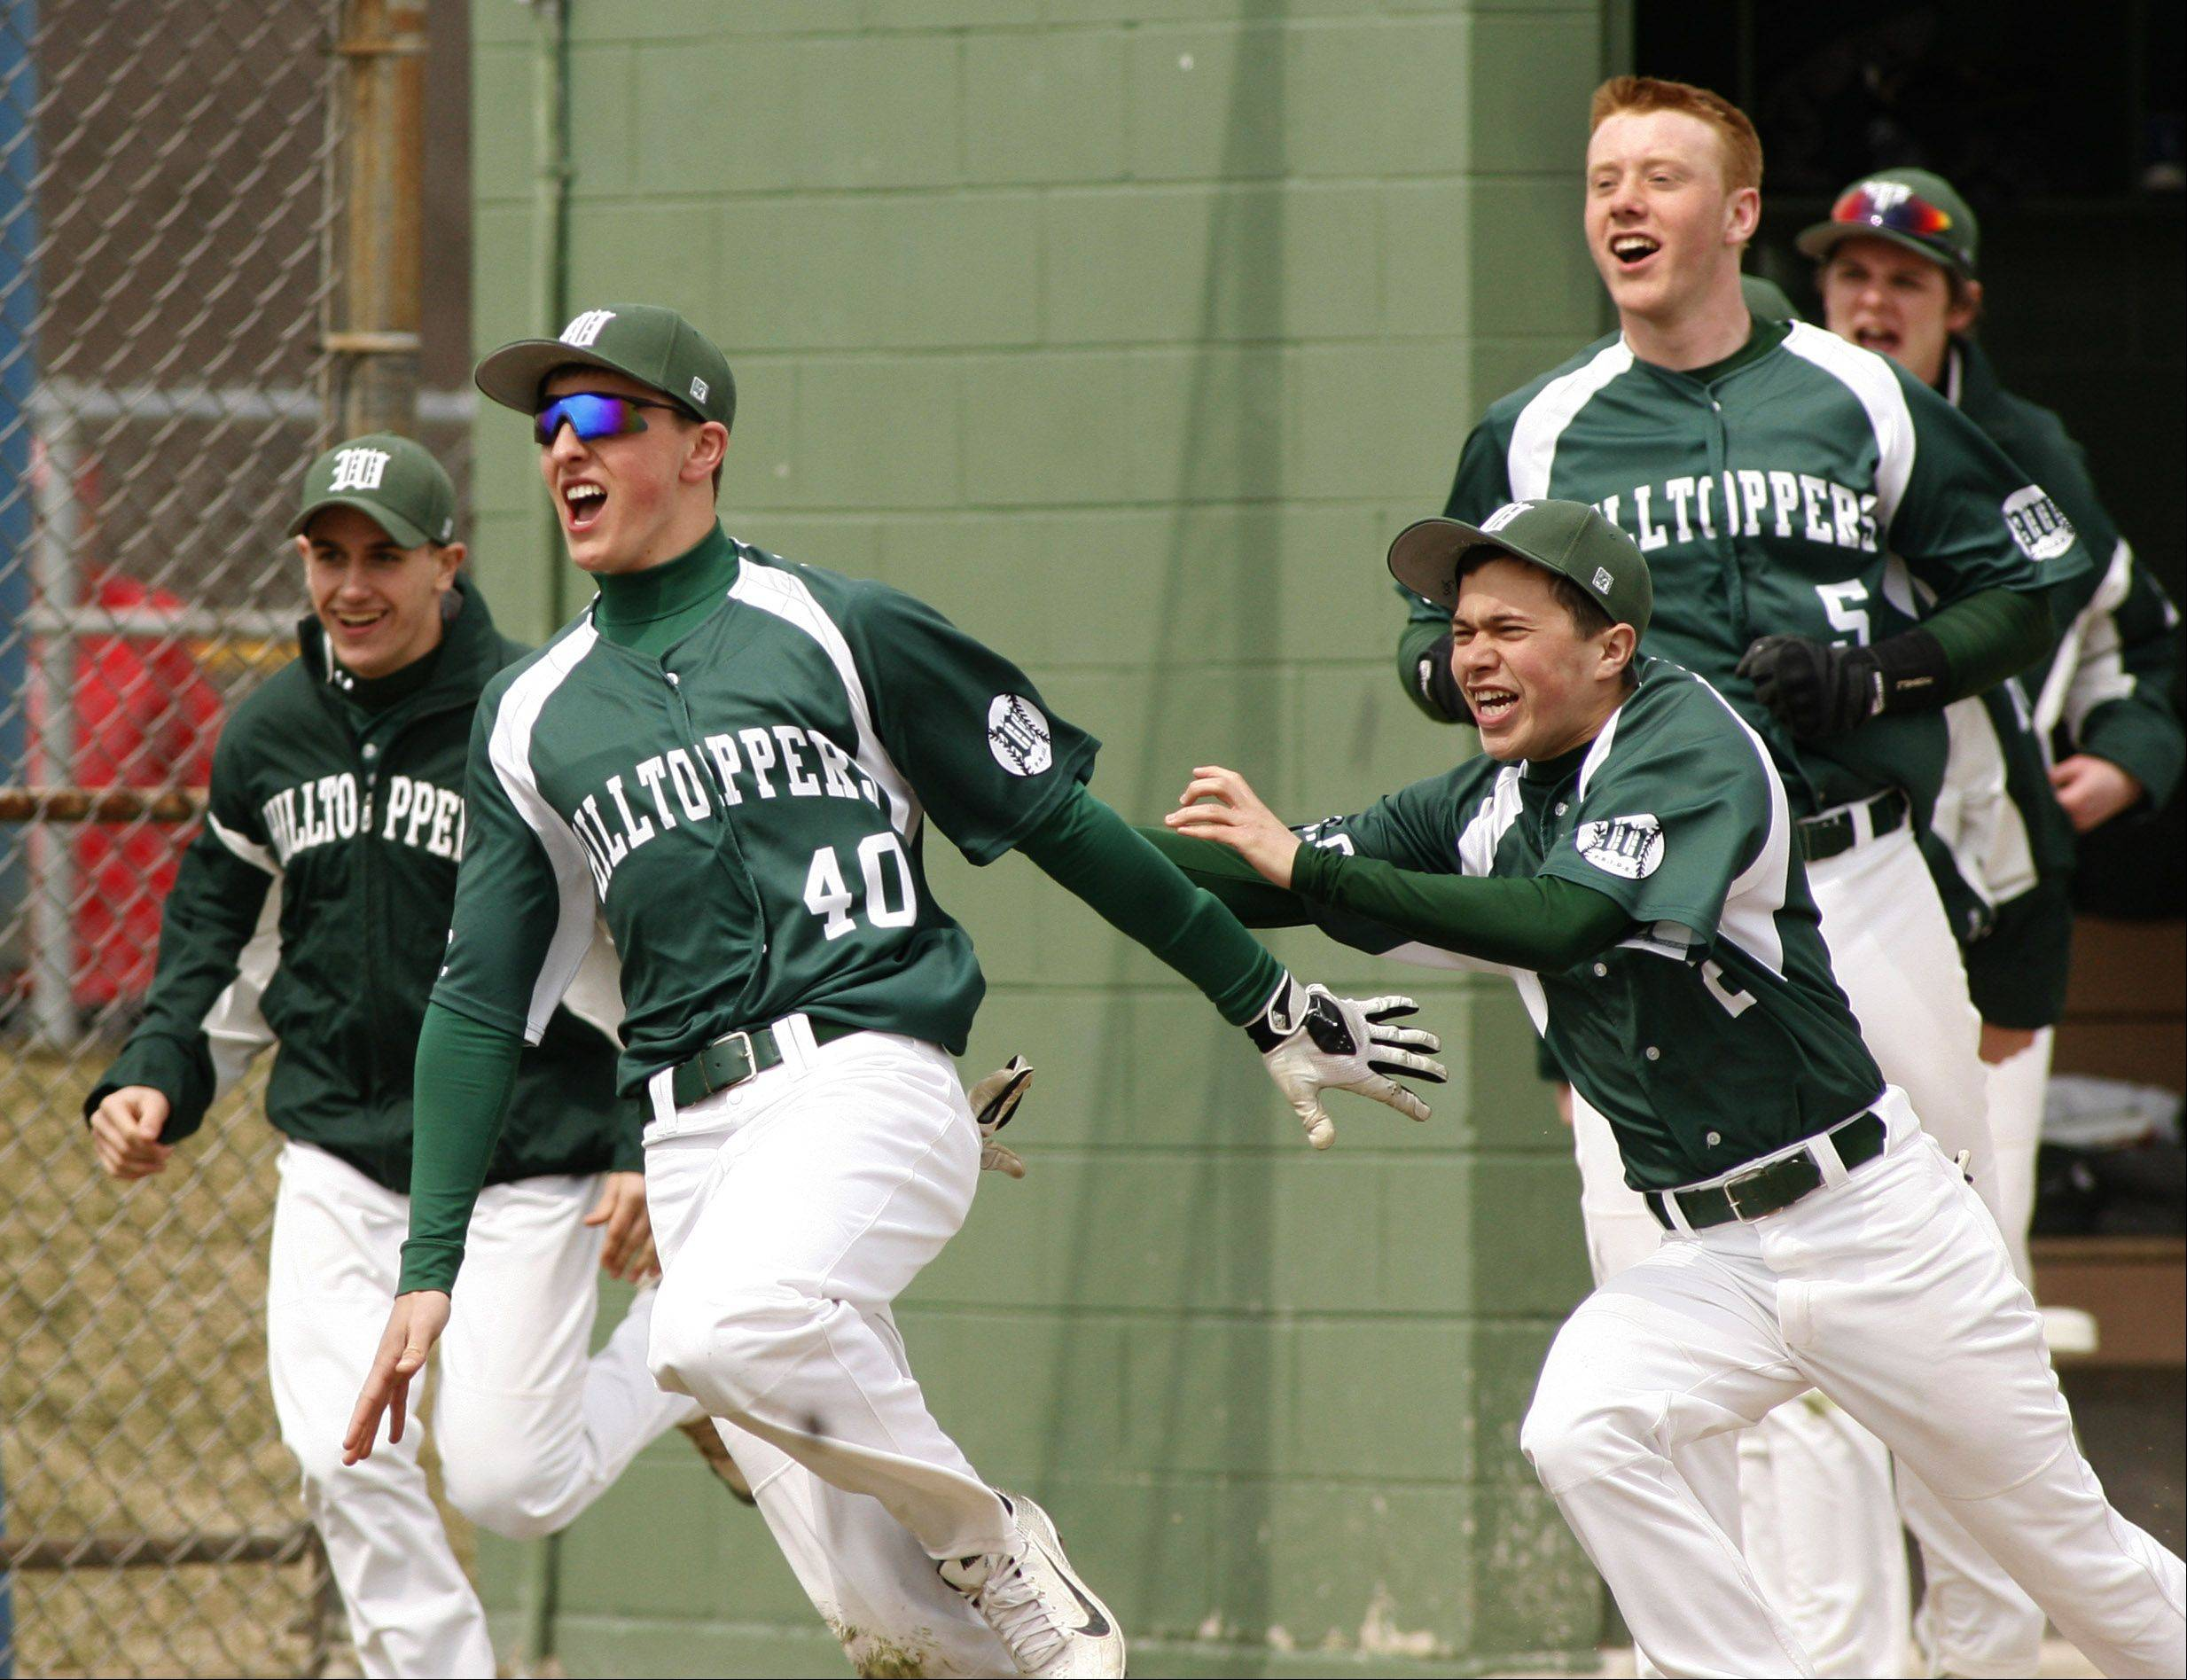 Luke Domask (40) leads the charge out of the dugout to celebrate Glenbard West's 6-5 win over Hinsdale Central.